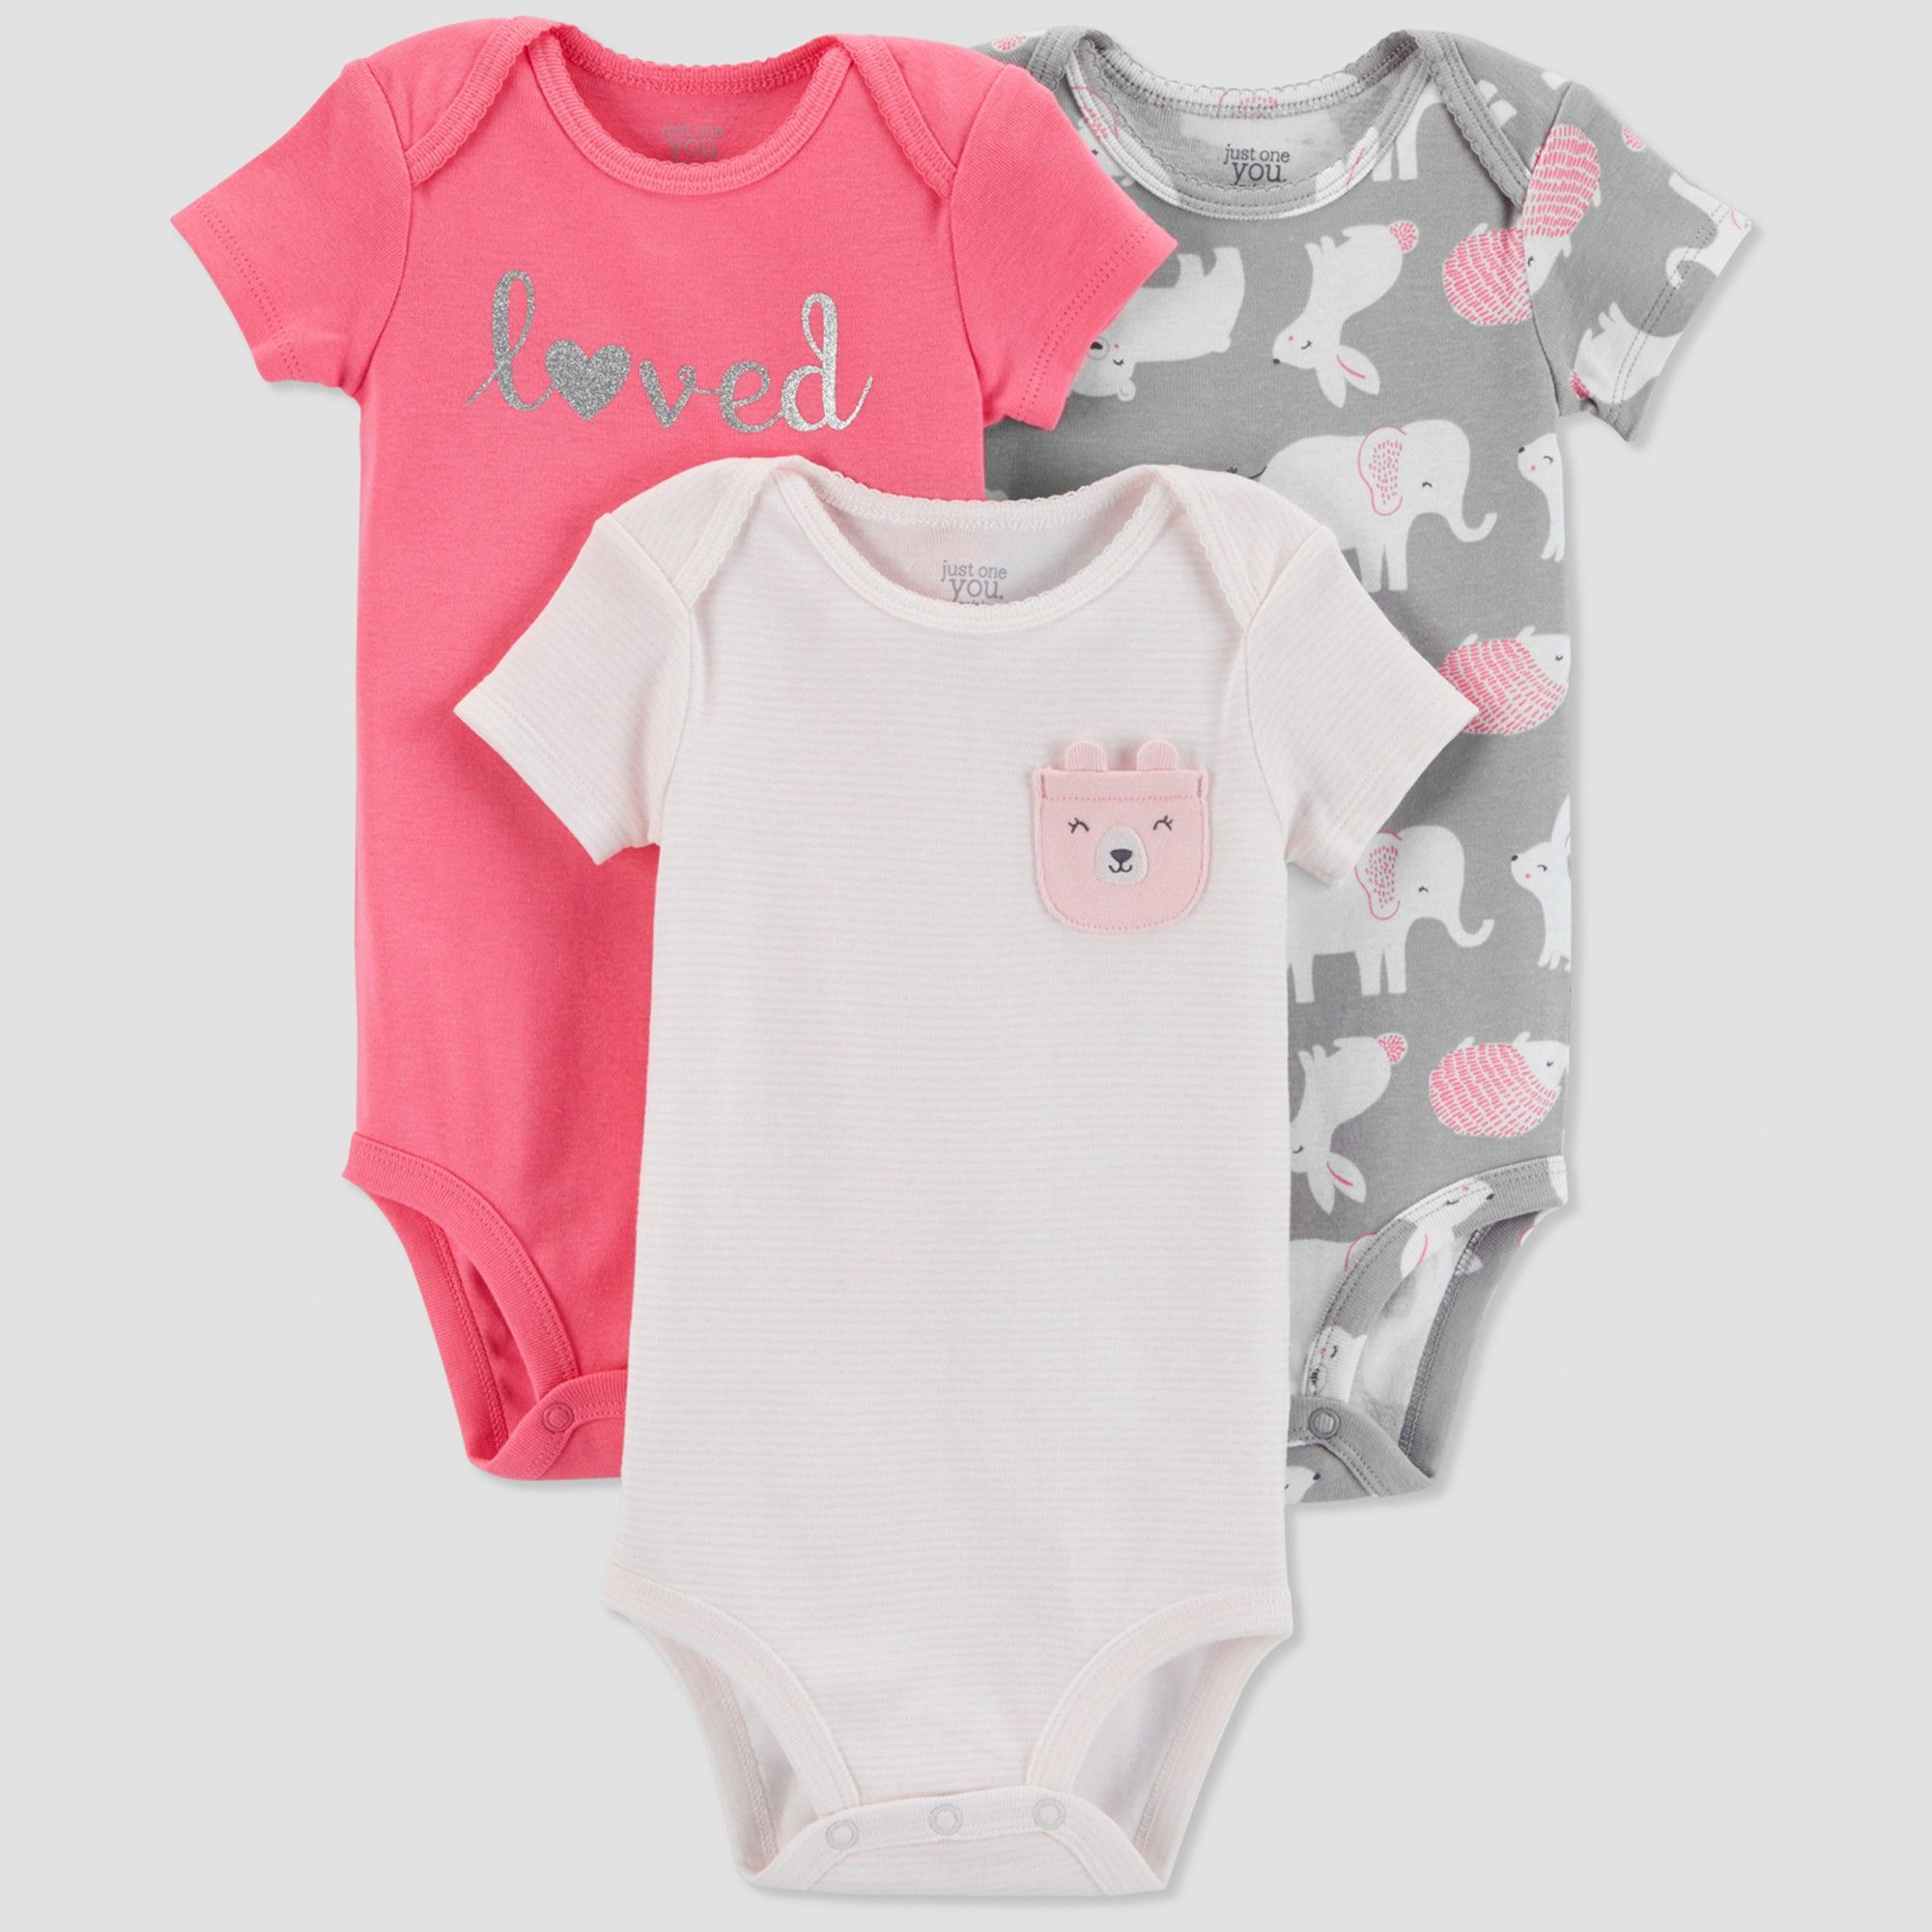 345aca76821 Baby Girls  3pk Love Bodysuit - Just One You made by carter s Pink Gray 12M